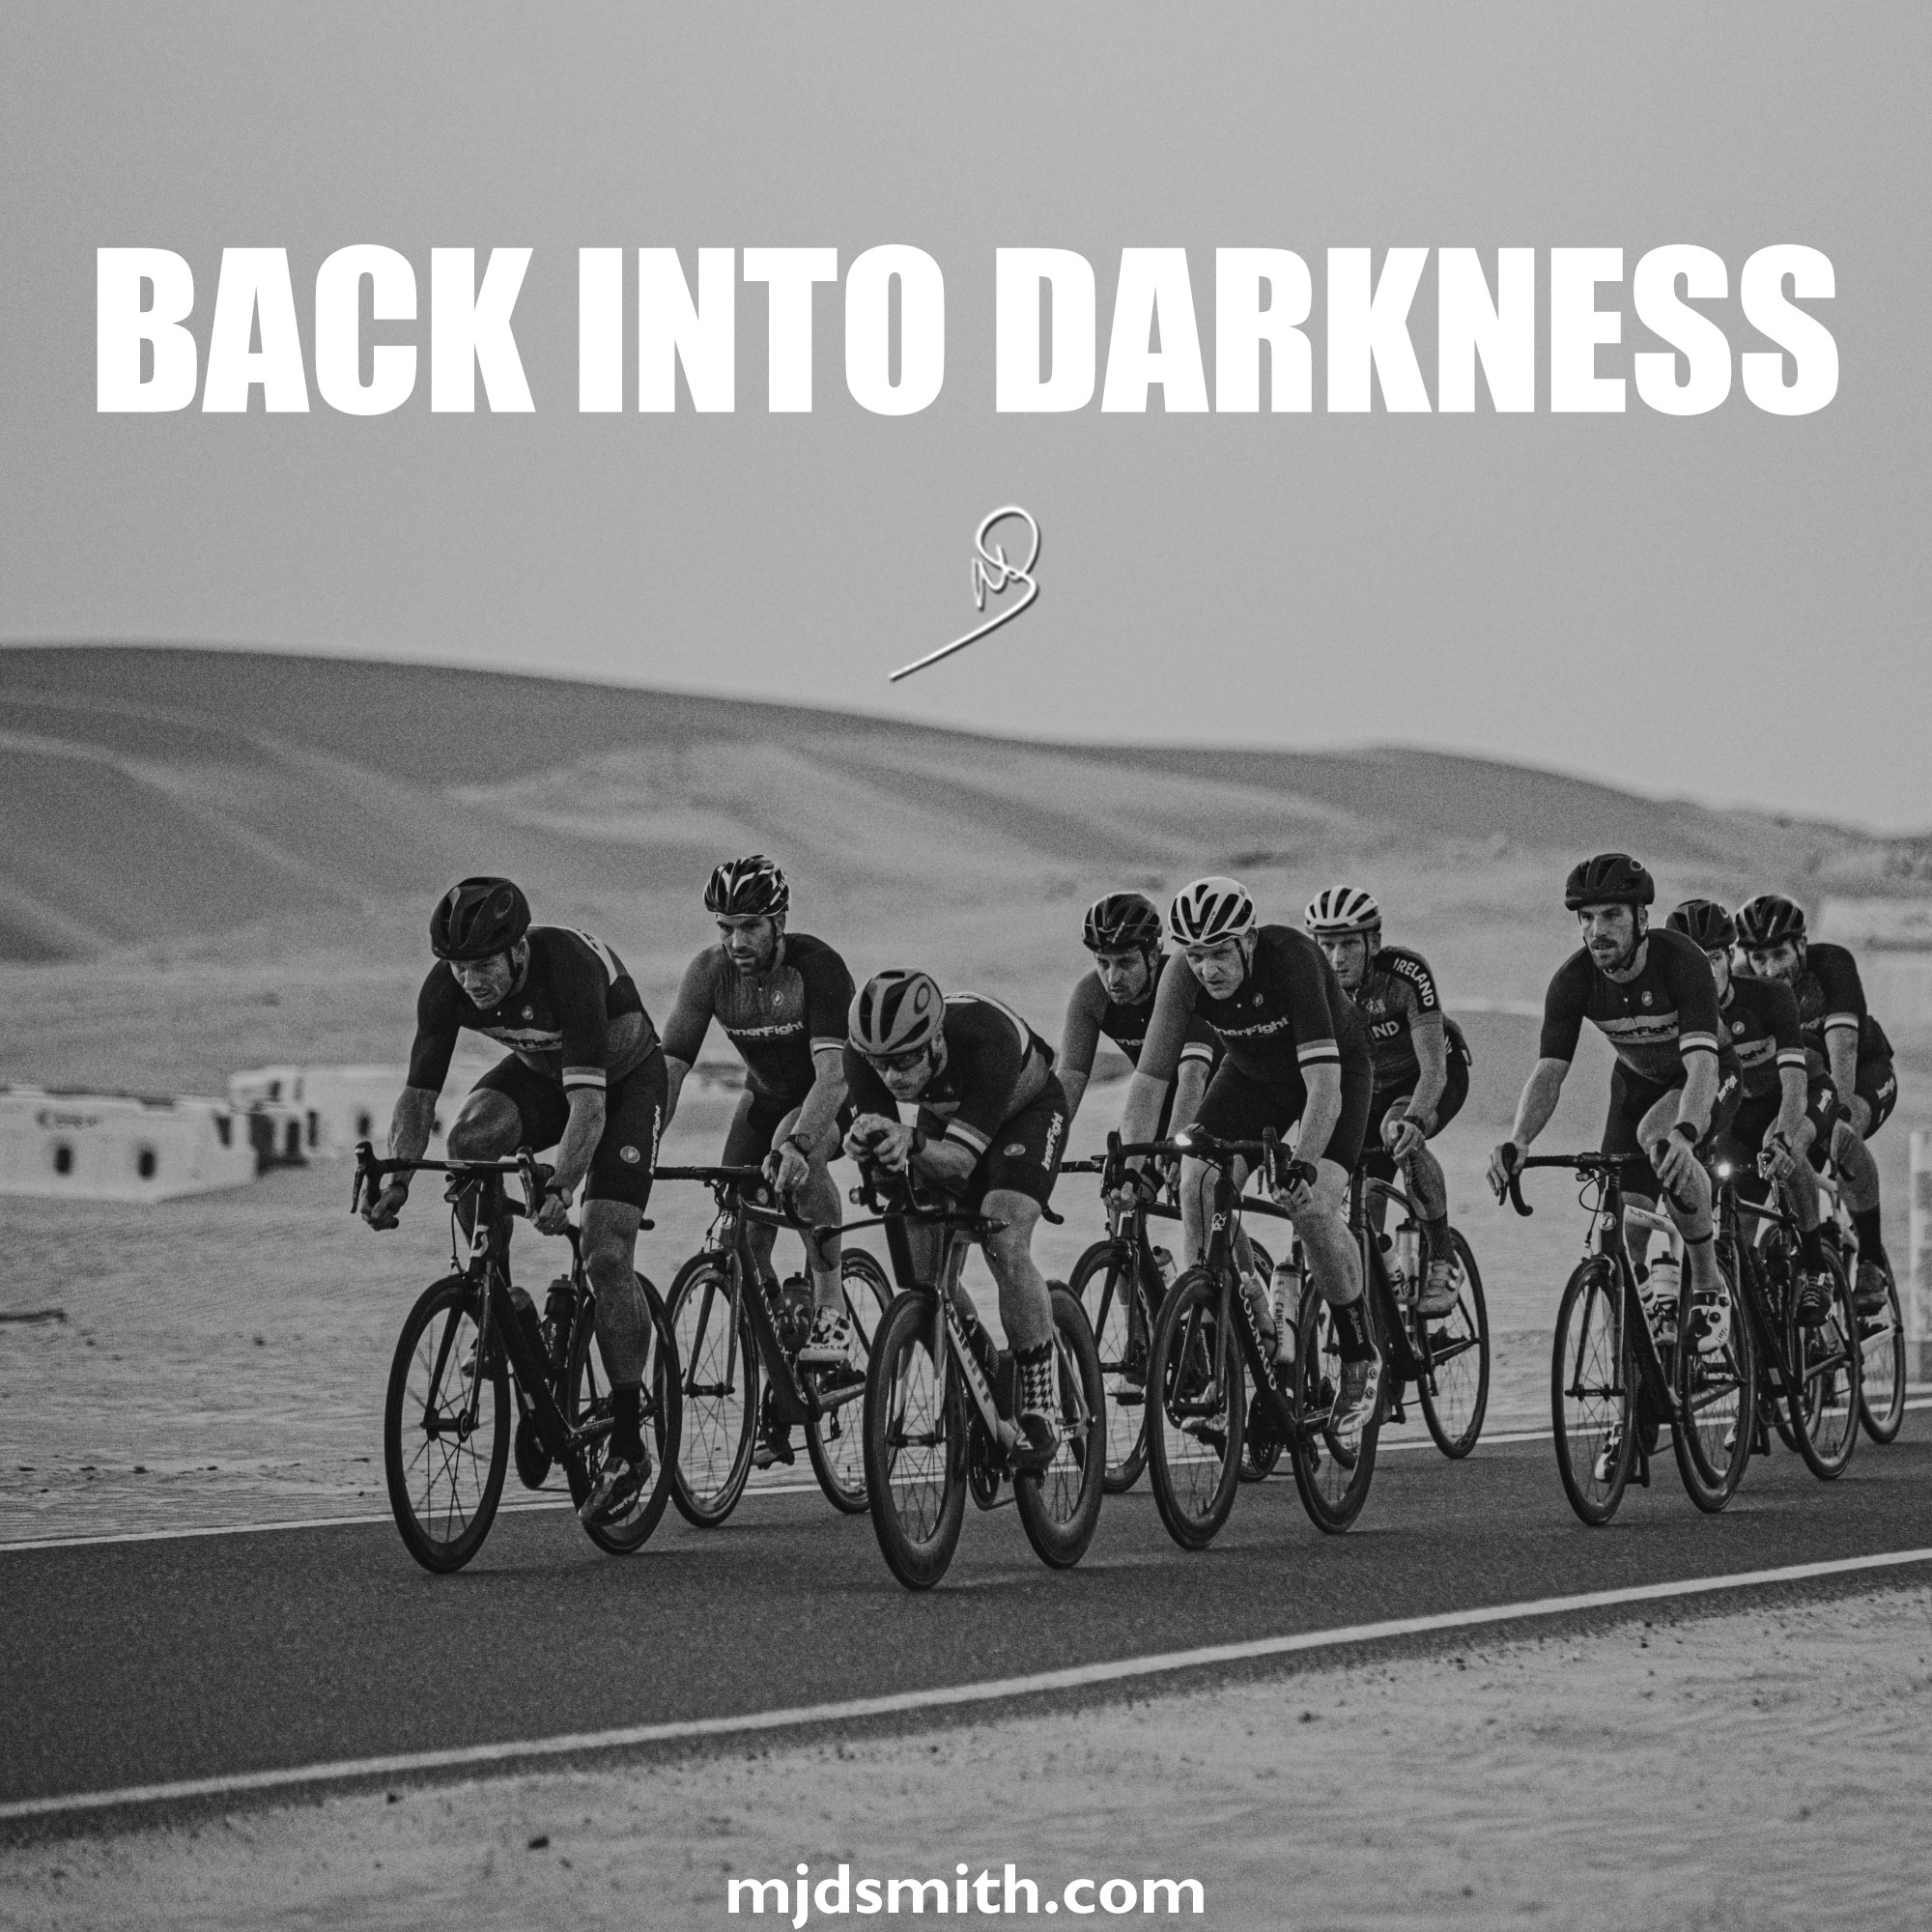 Back into the darkness